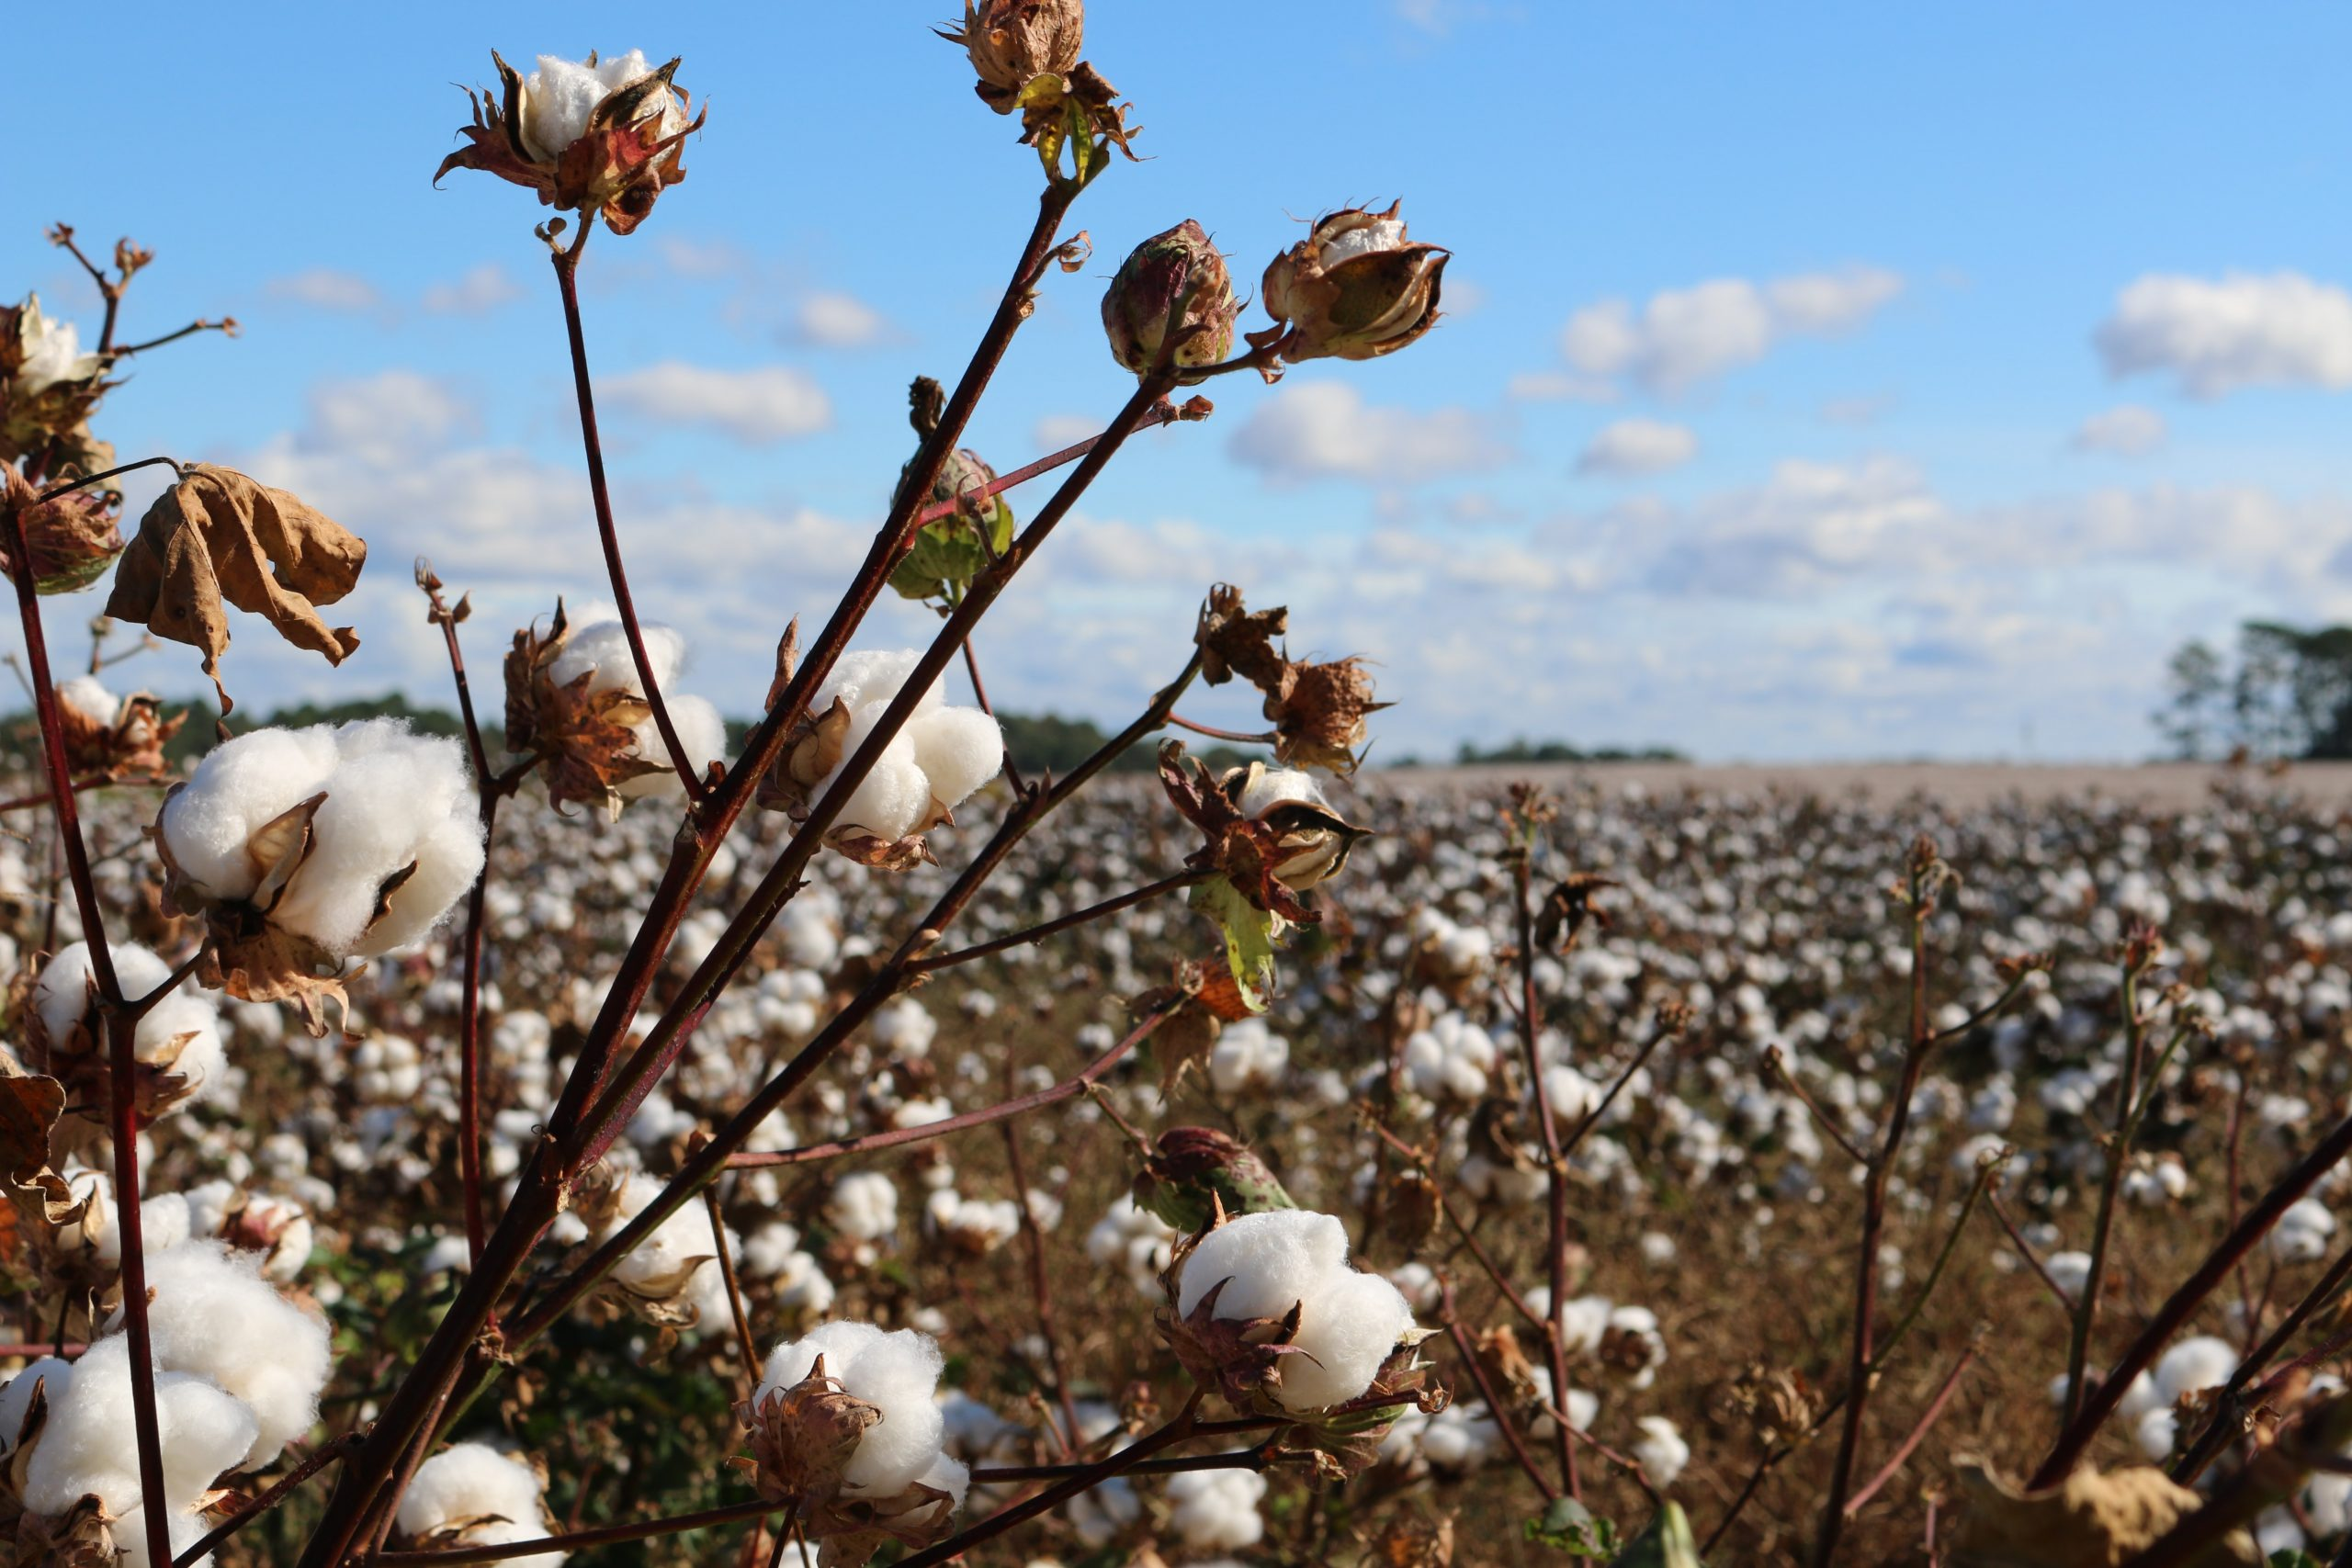 Image of a cotton field.